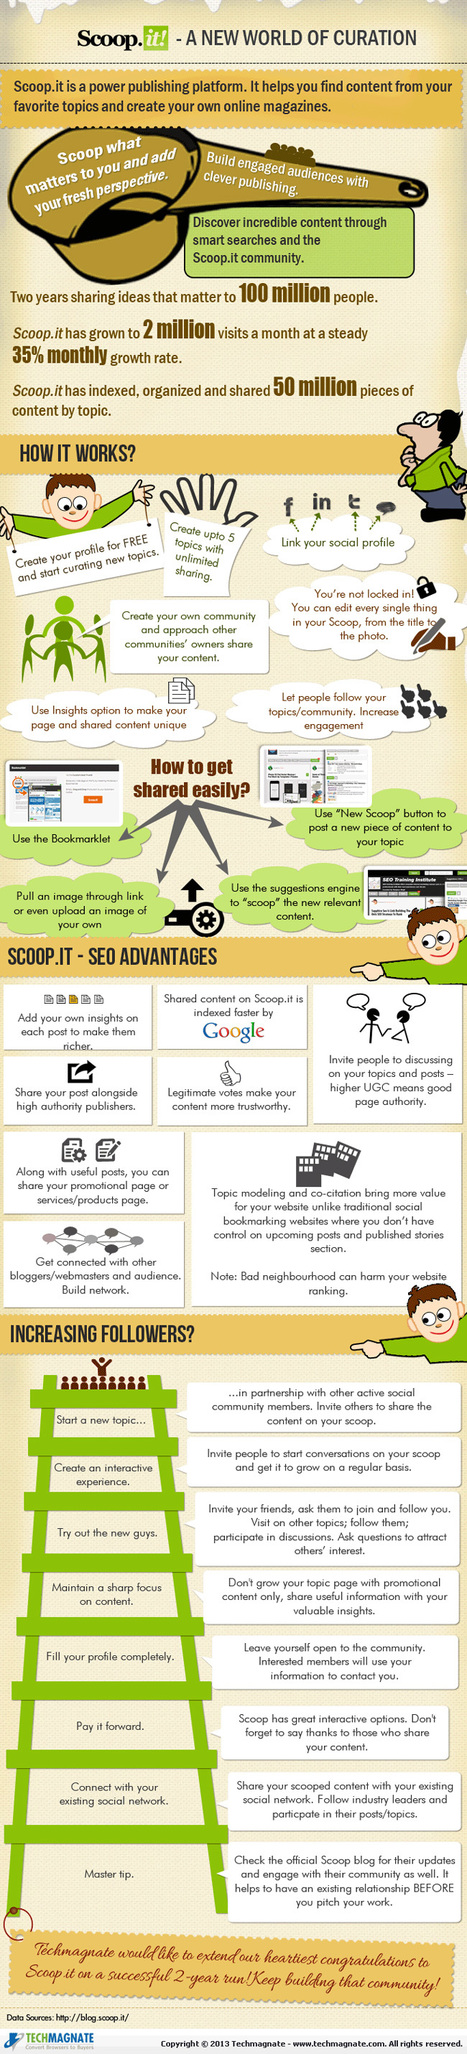 Scoop.It for SEO – A New World of Curation [Infographic] | Medienbildung | Scoop.it